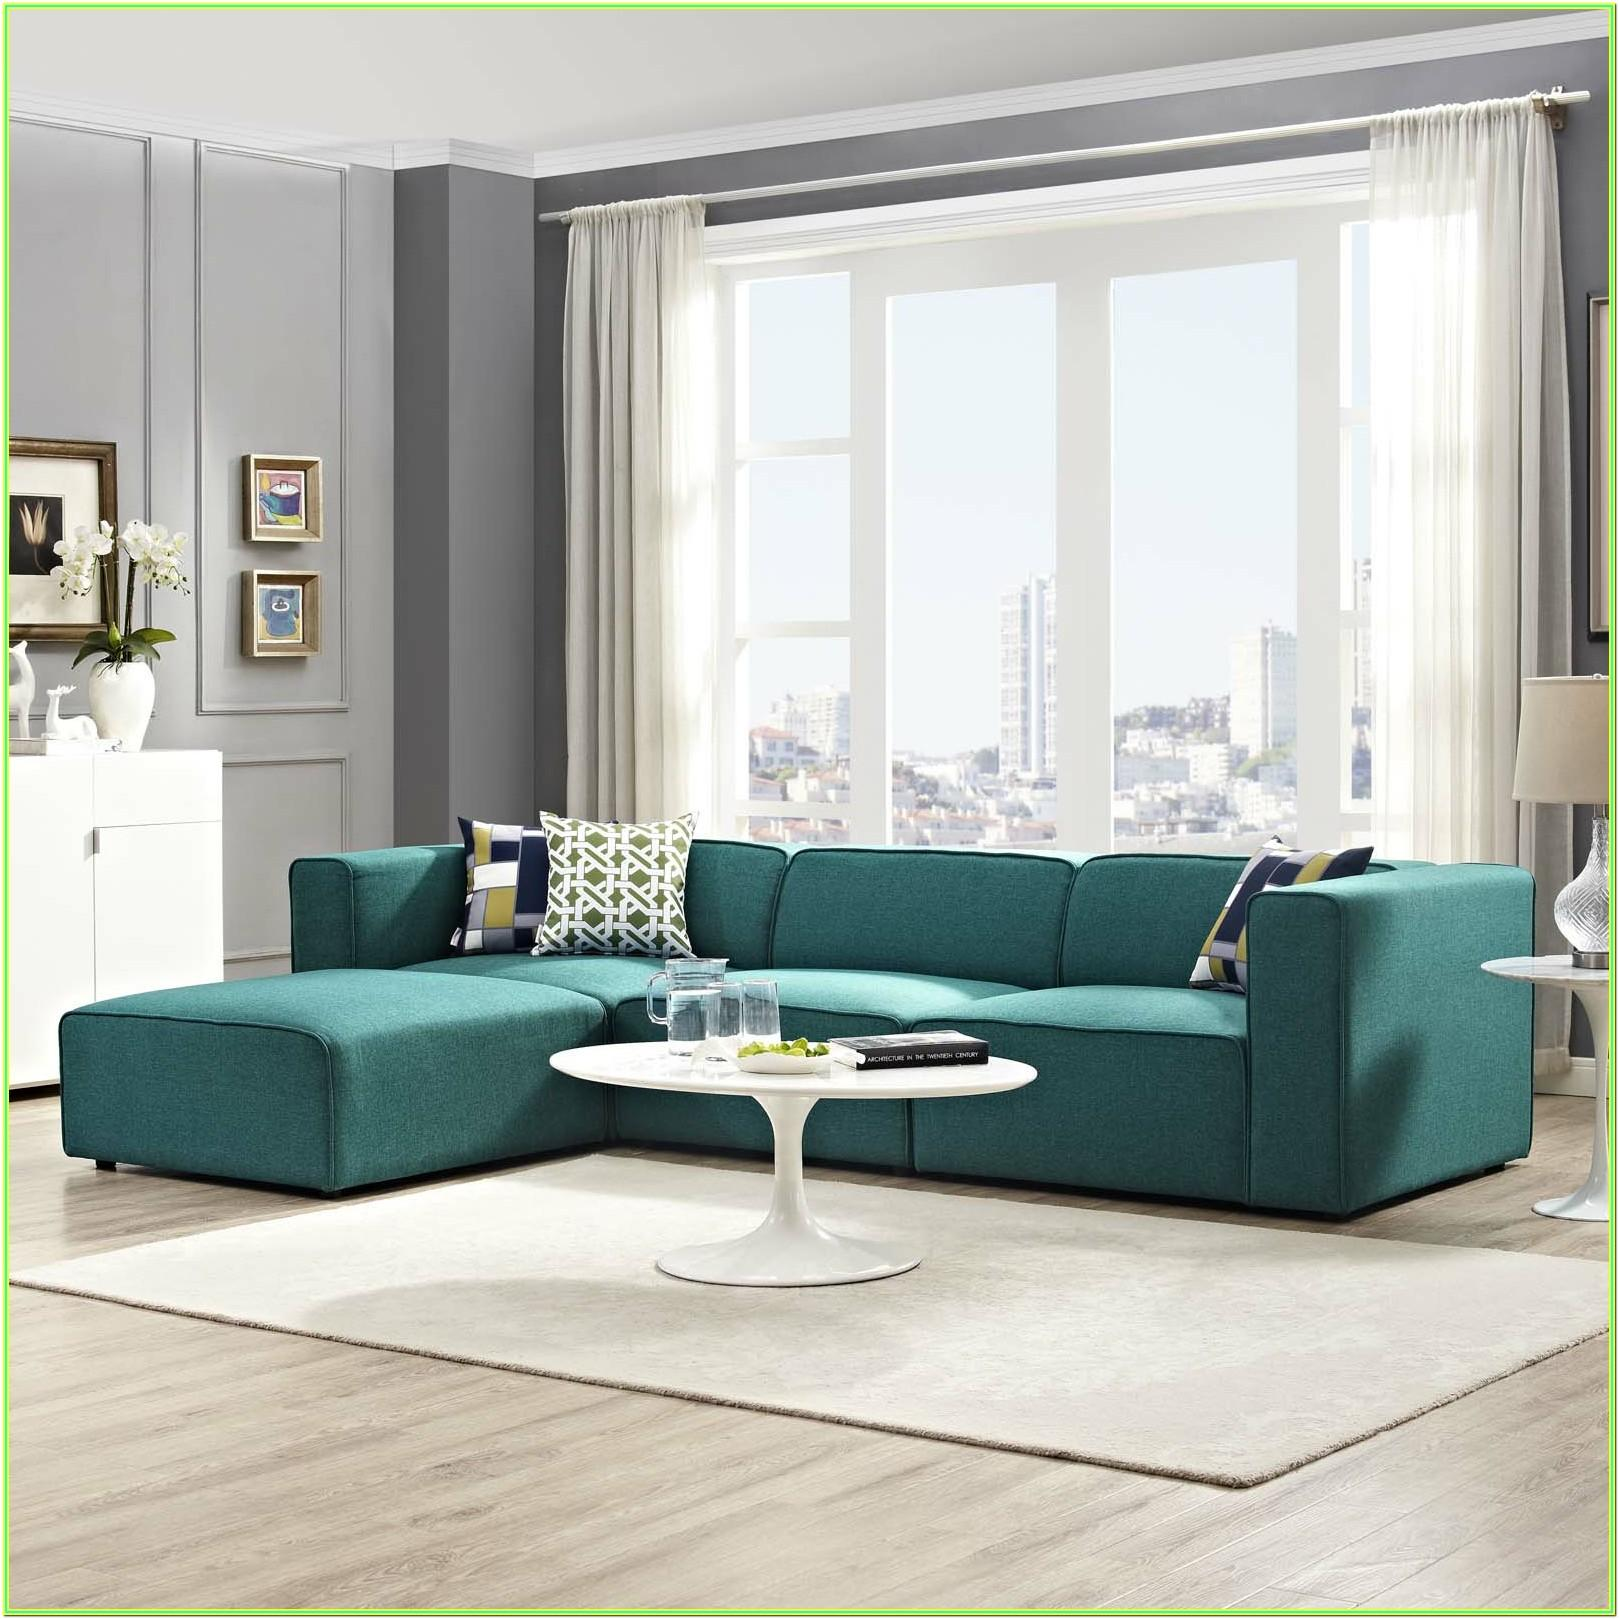 Living Room Modern Couch Set